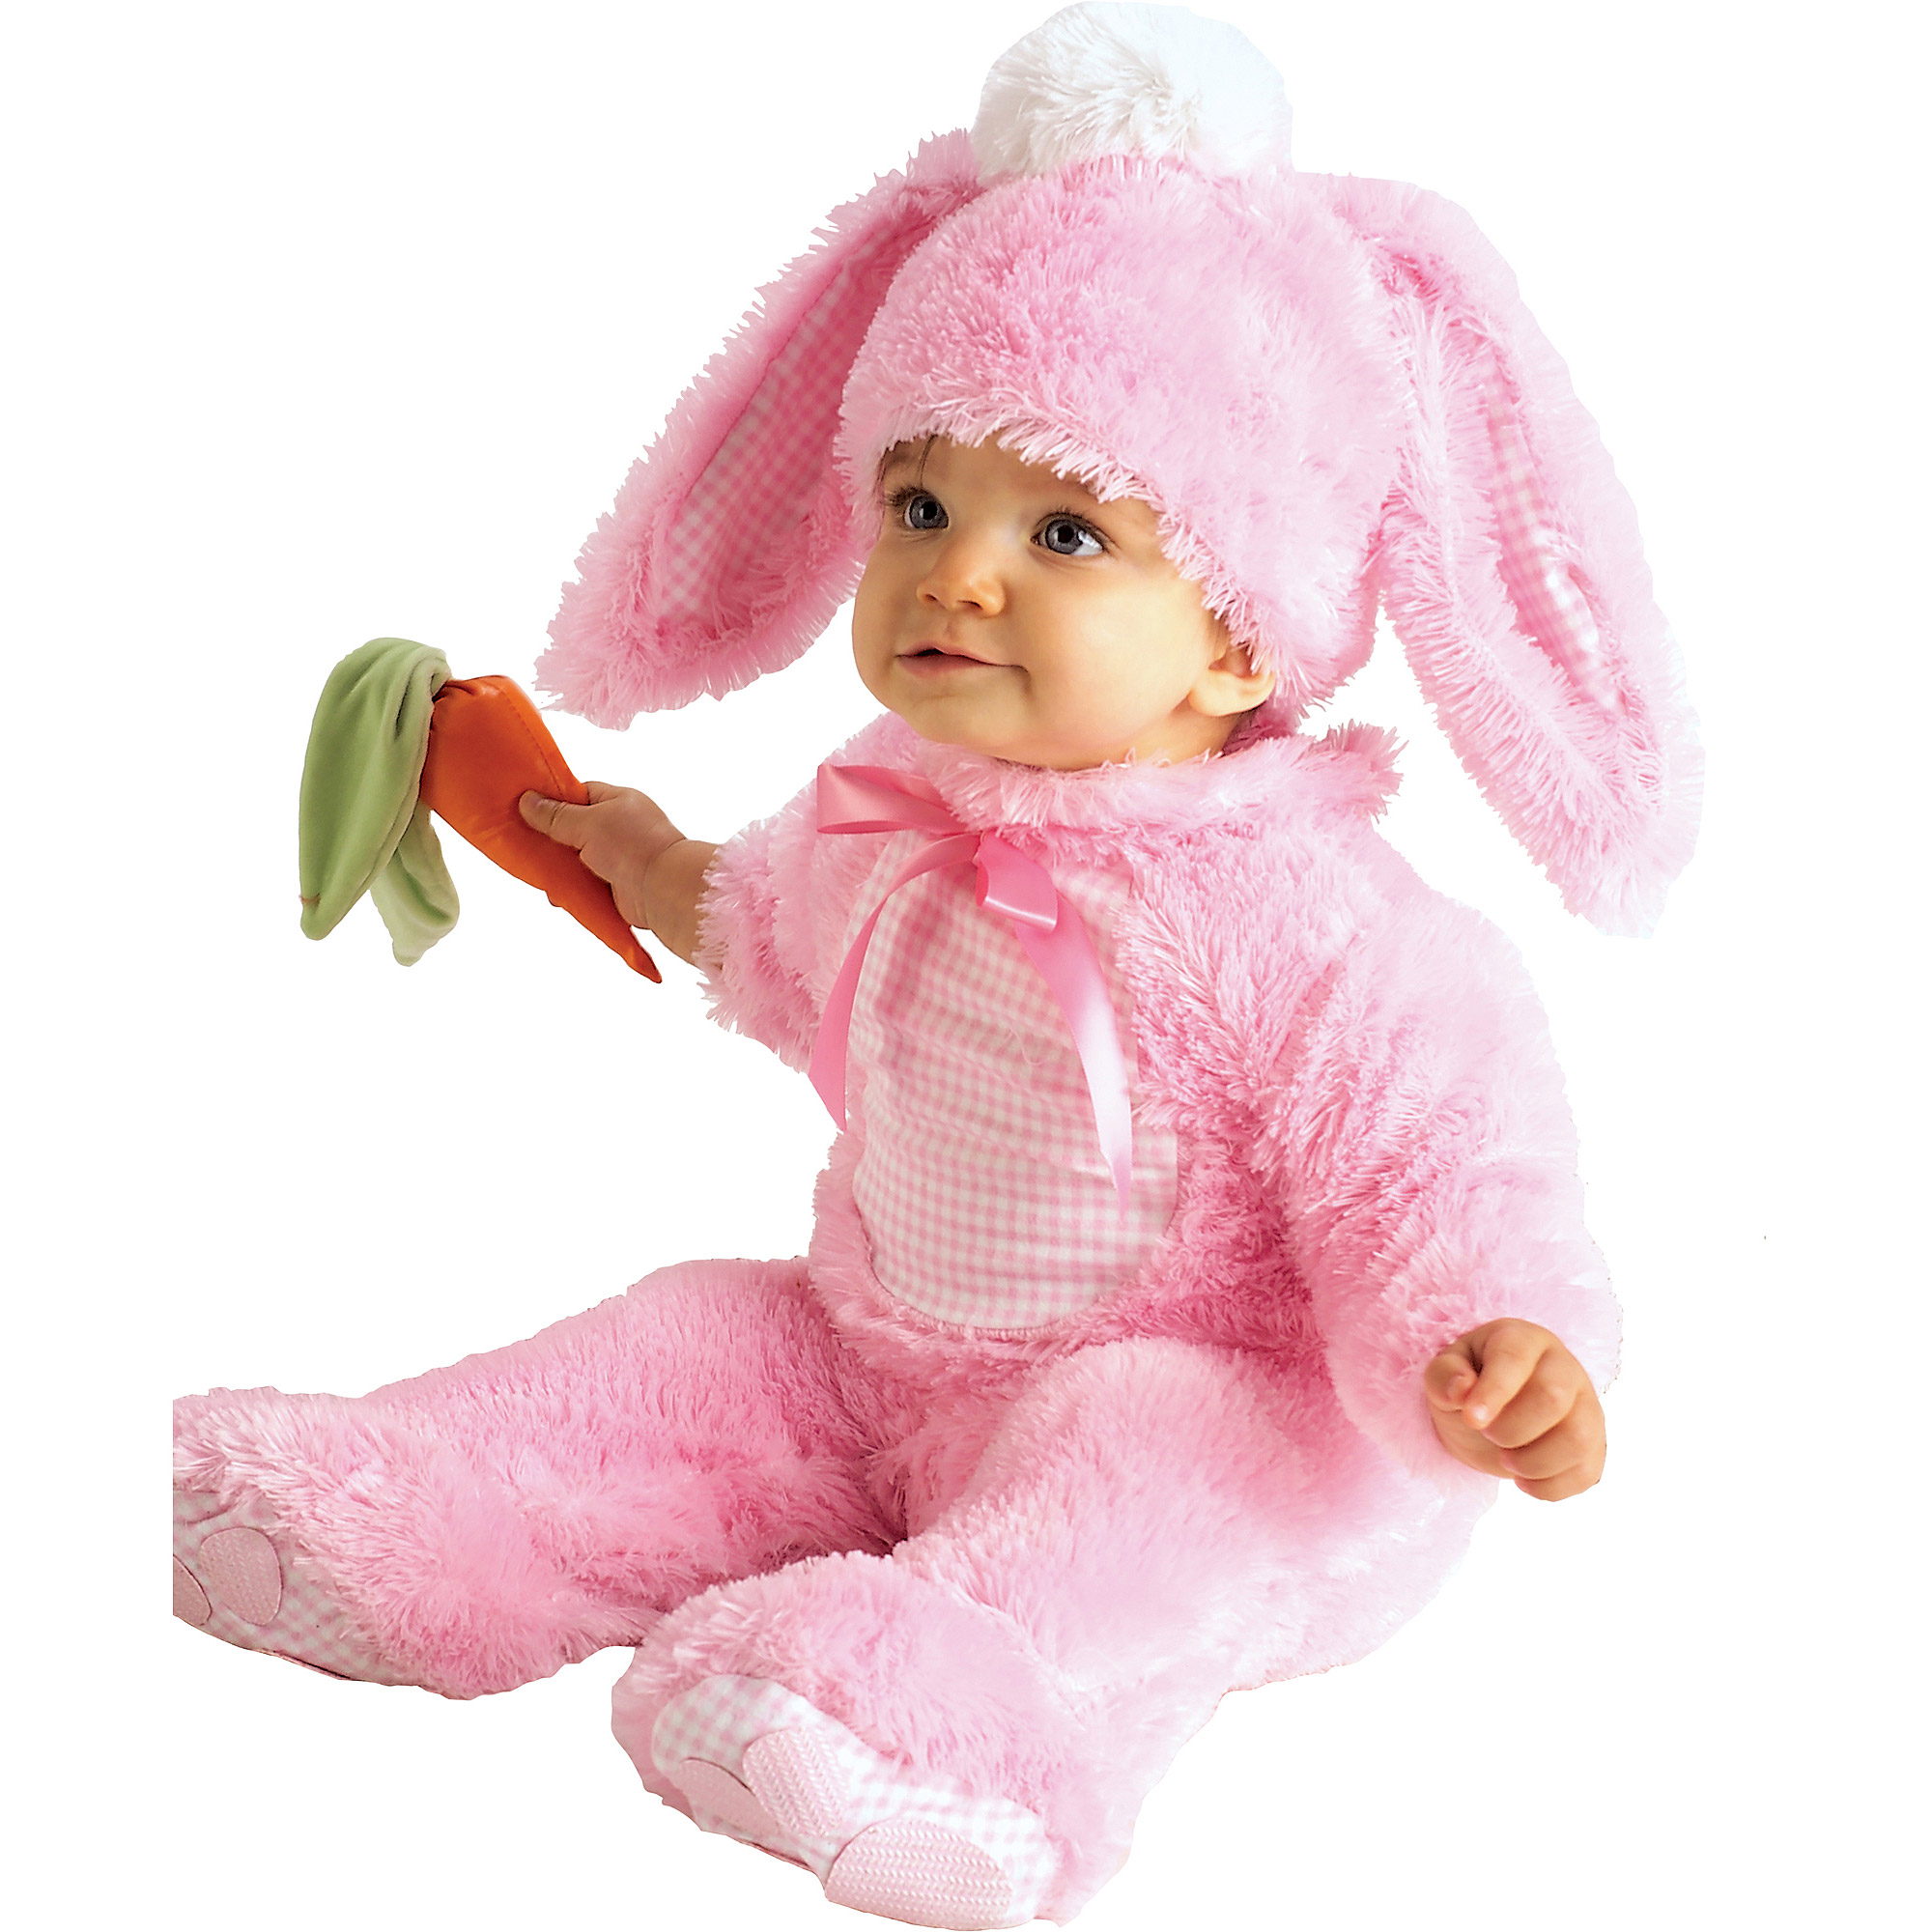 pink bunny infant jumpsuit halloween costume walmartcom - Walmart Halloween Costumes For Baby